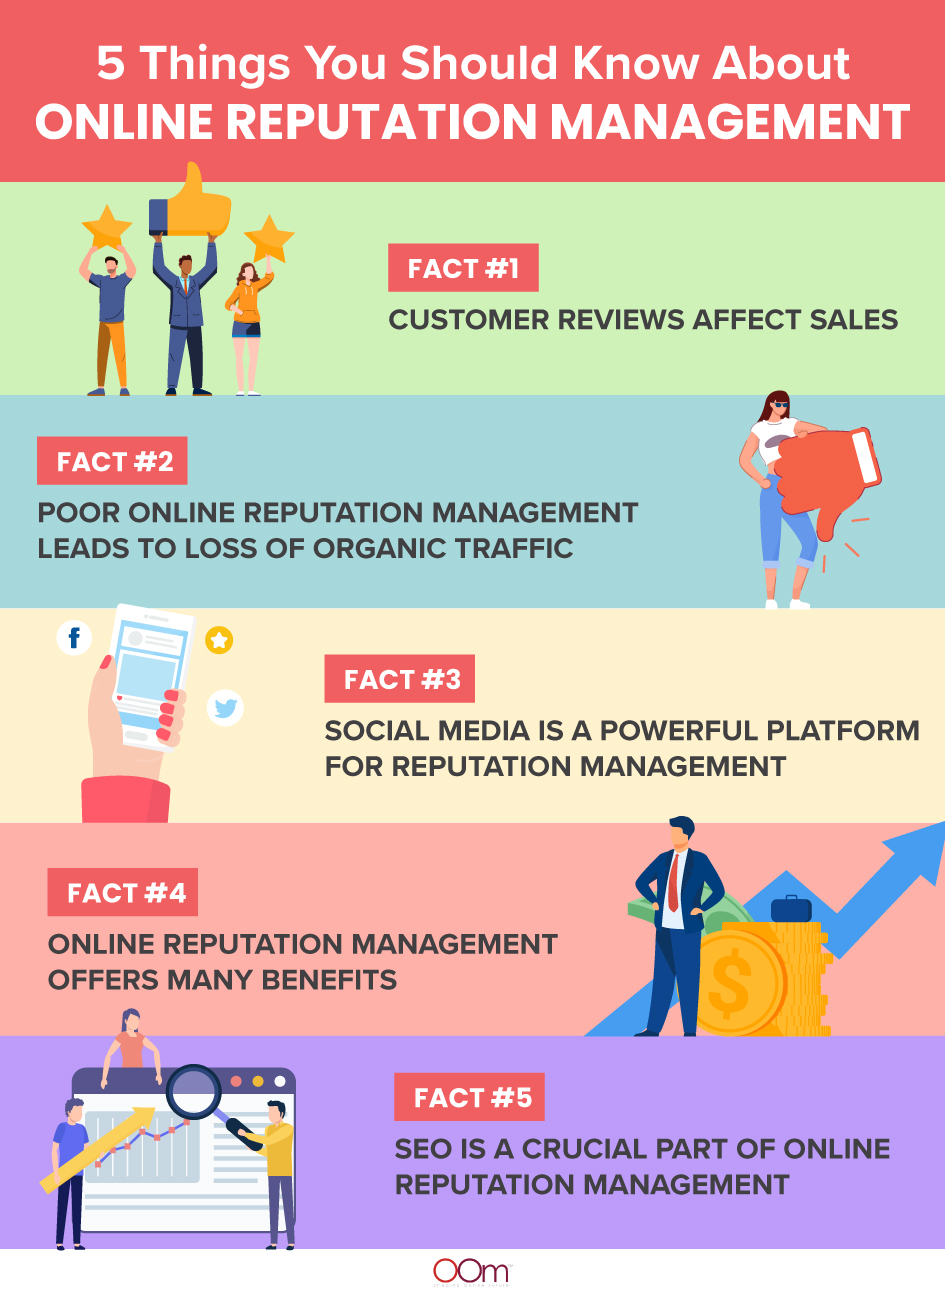 5-Things-You-Should-Know-About-Online-Reputation-Management-02